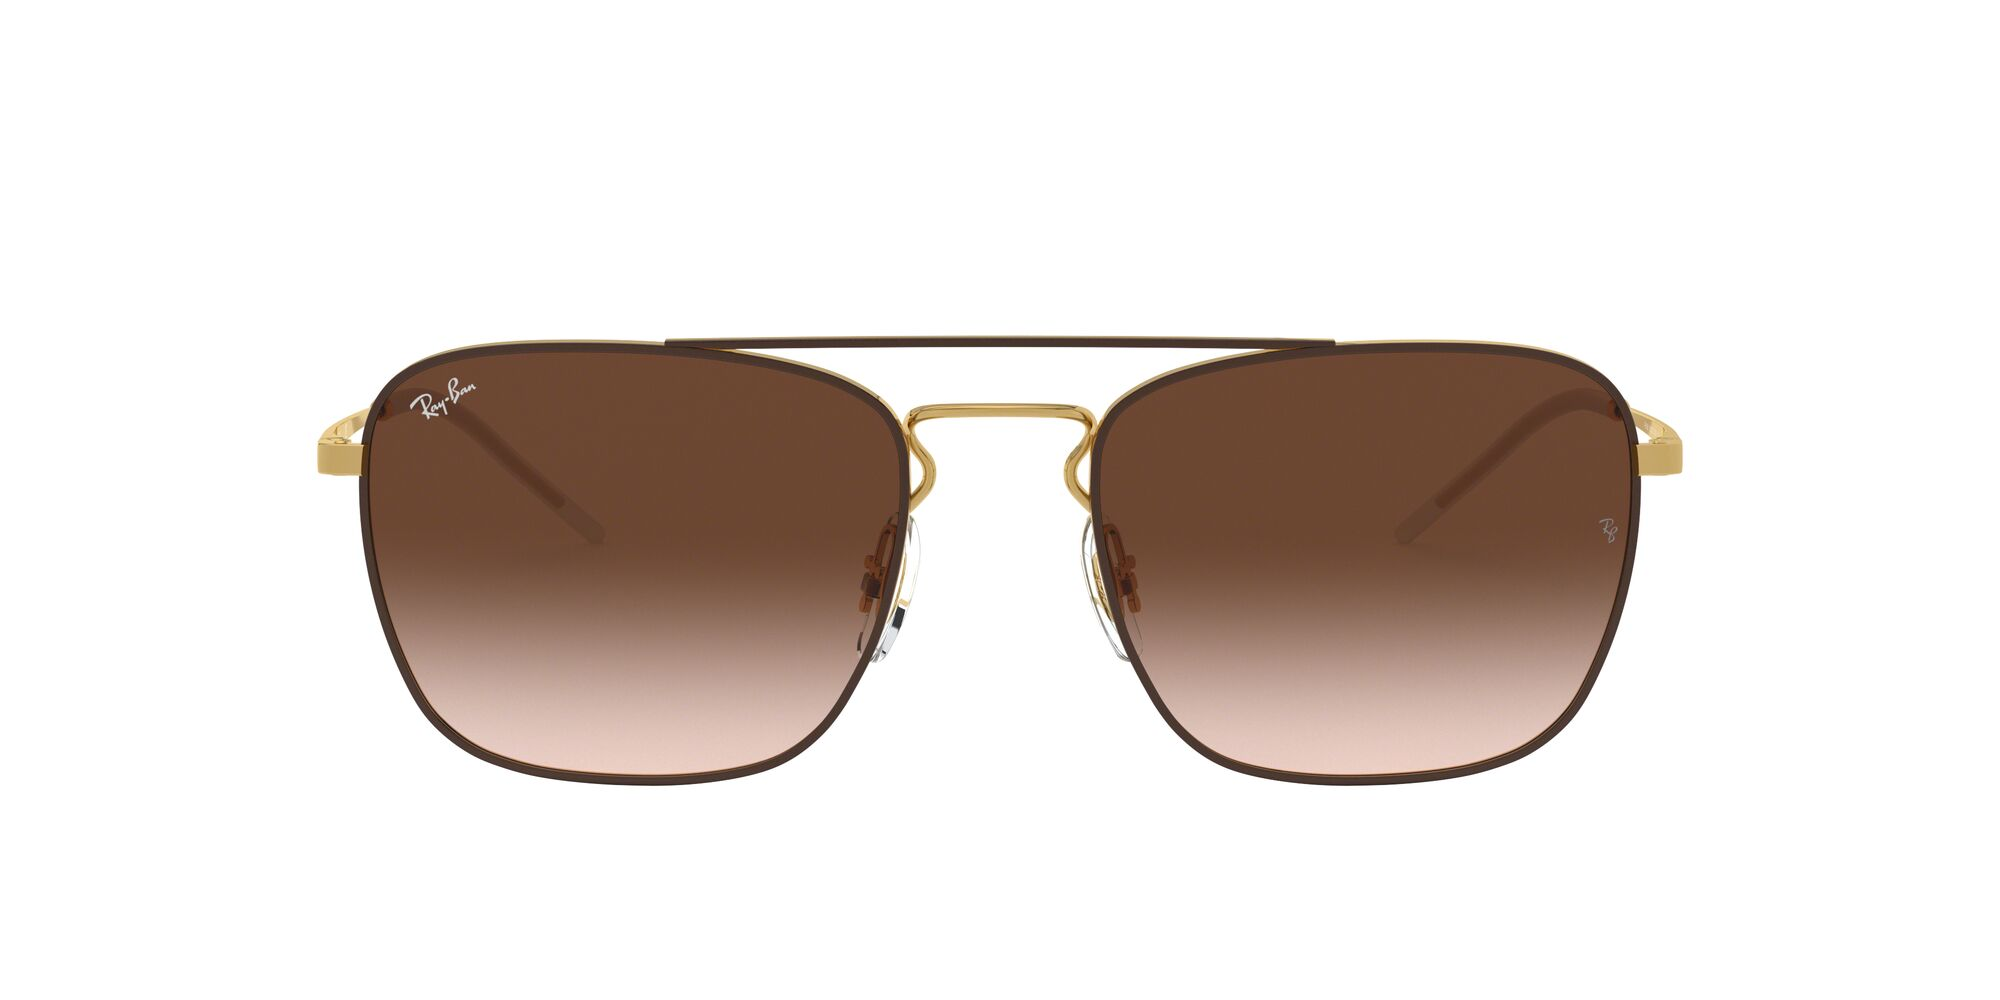 Front Ray-Ban Ray-Ban RB3588 905513 55/19 Goud, Bruin/Bruin